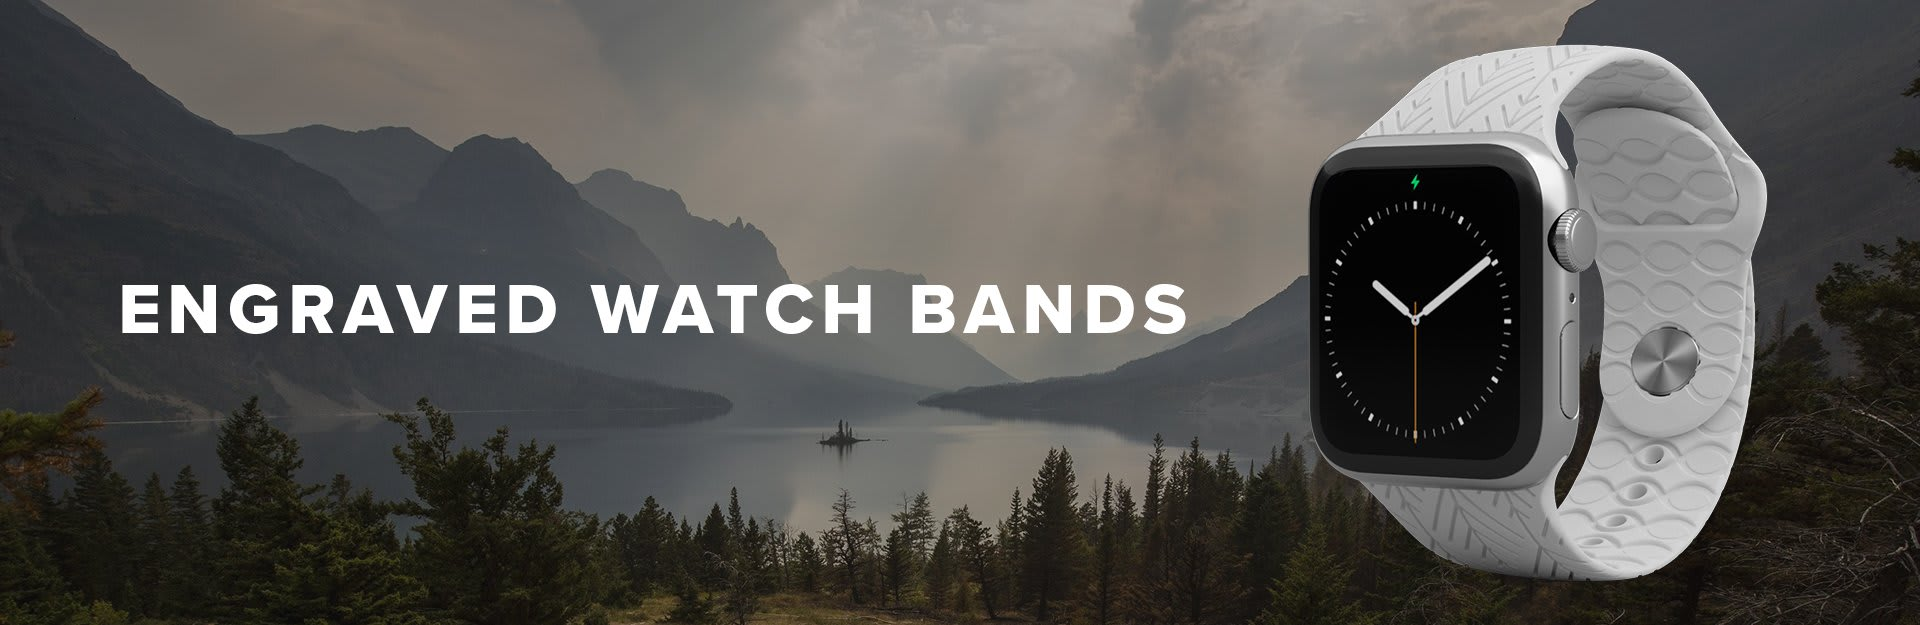 Engraved Watch Bands, solid white watch overlaid on mountain lake